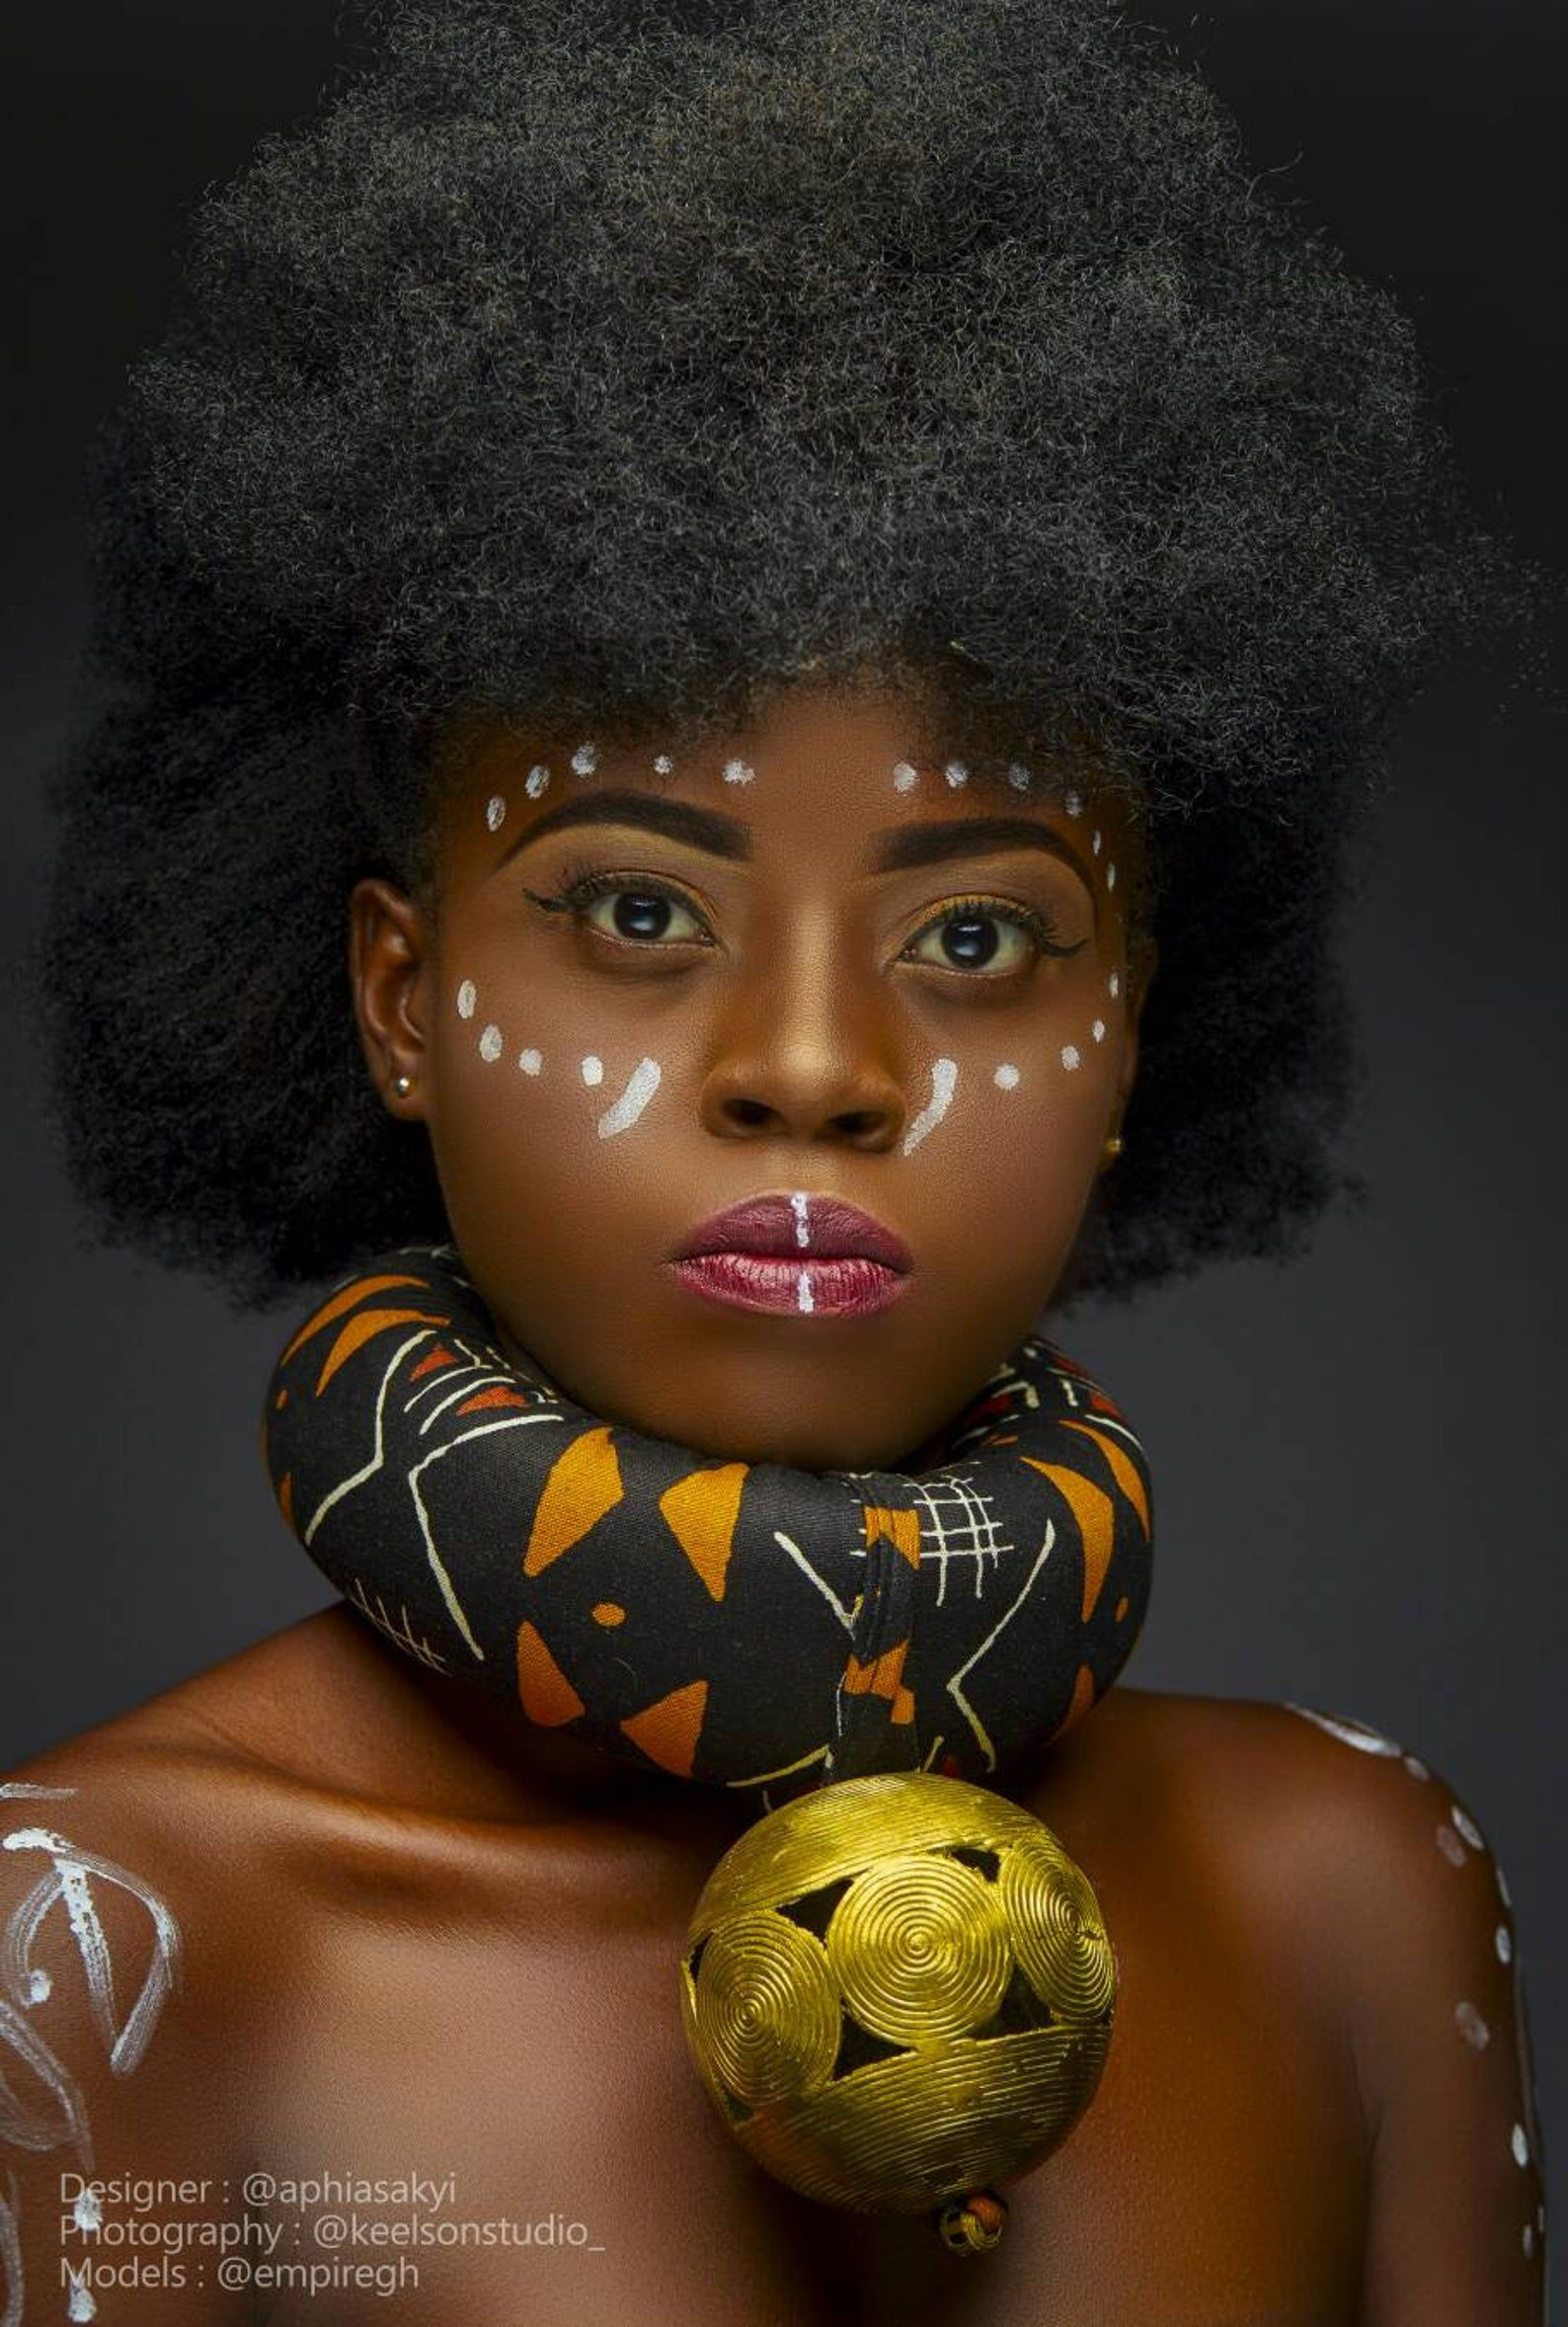 body accessories, African accessories, bold access